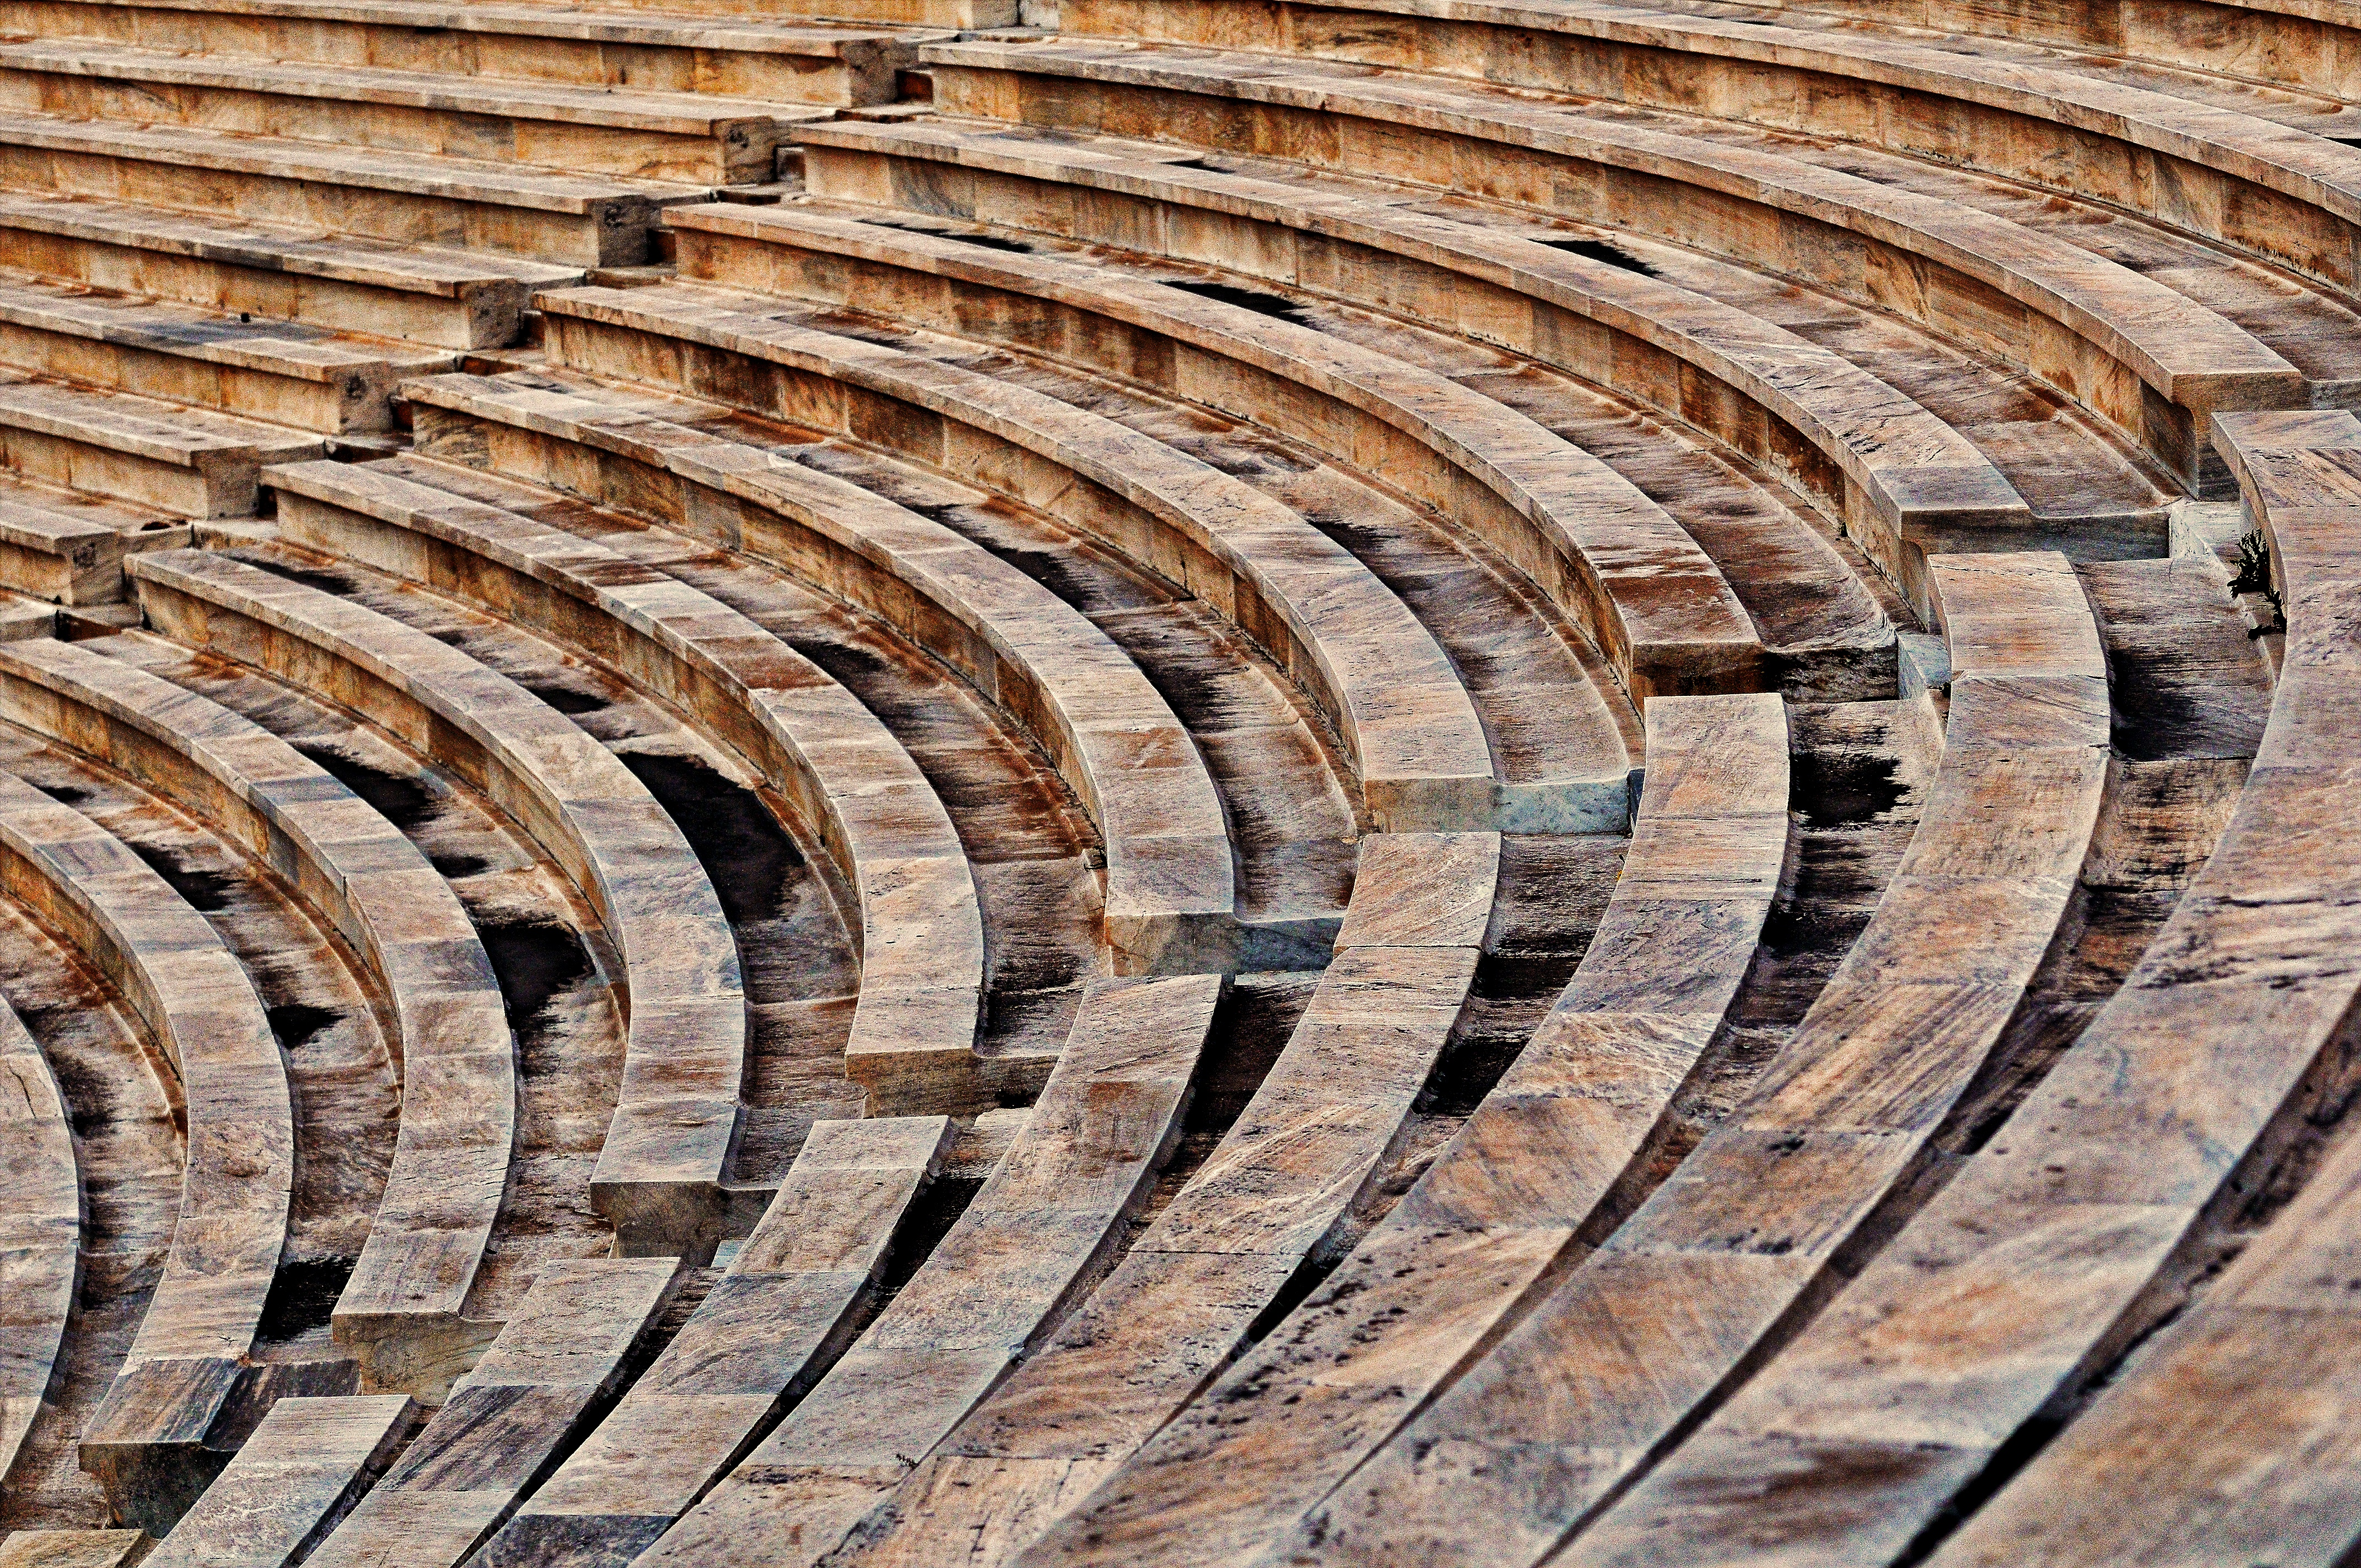 Image of an ancient Olympic Stadium